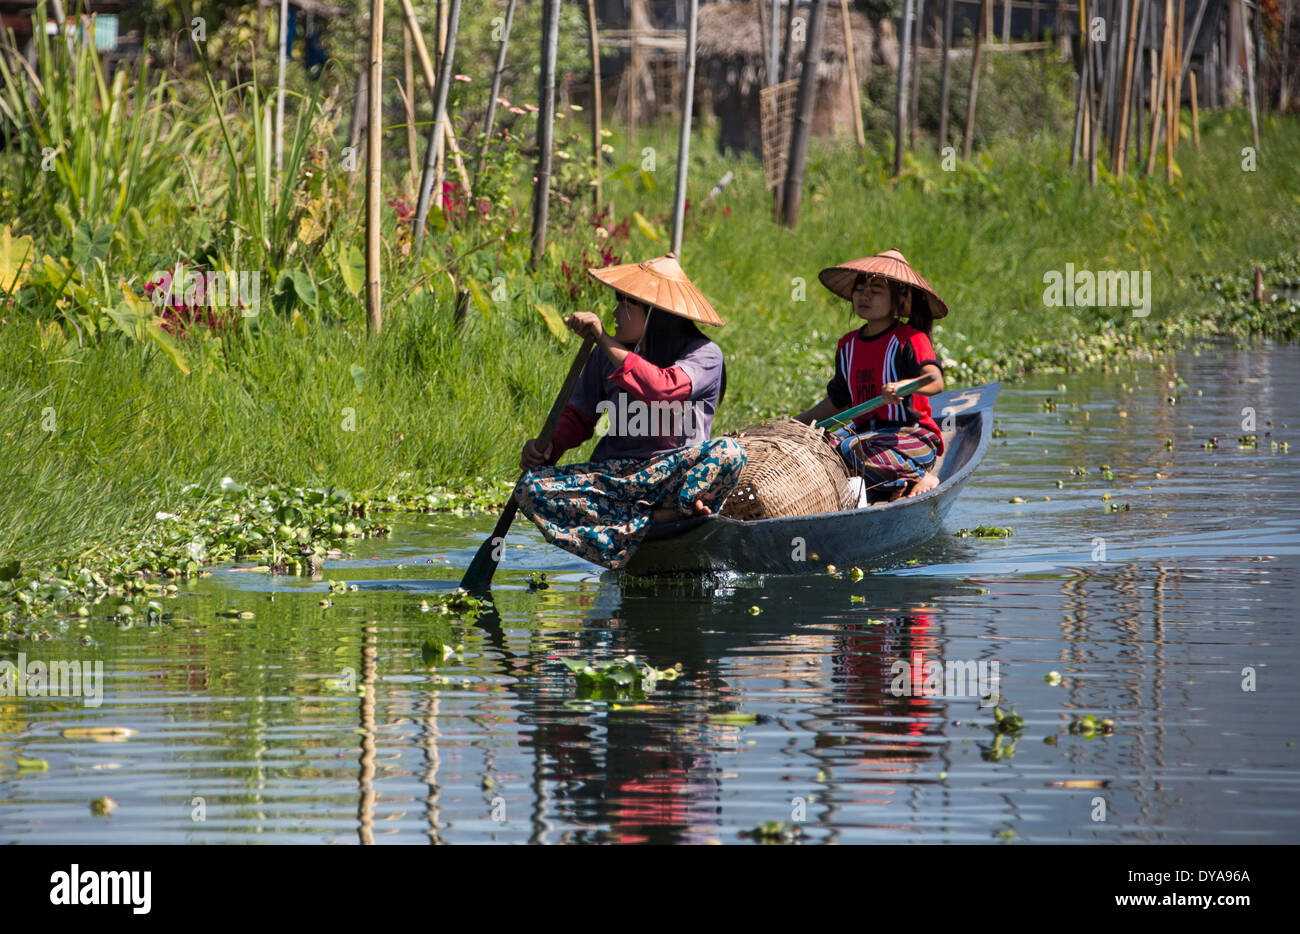 Inle, Myanmar, Burma, Asia, canal, colourful, lake, boat, local, tour, touristic, traditional, transport, travel - Stock Image